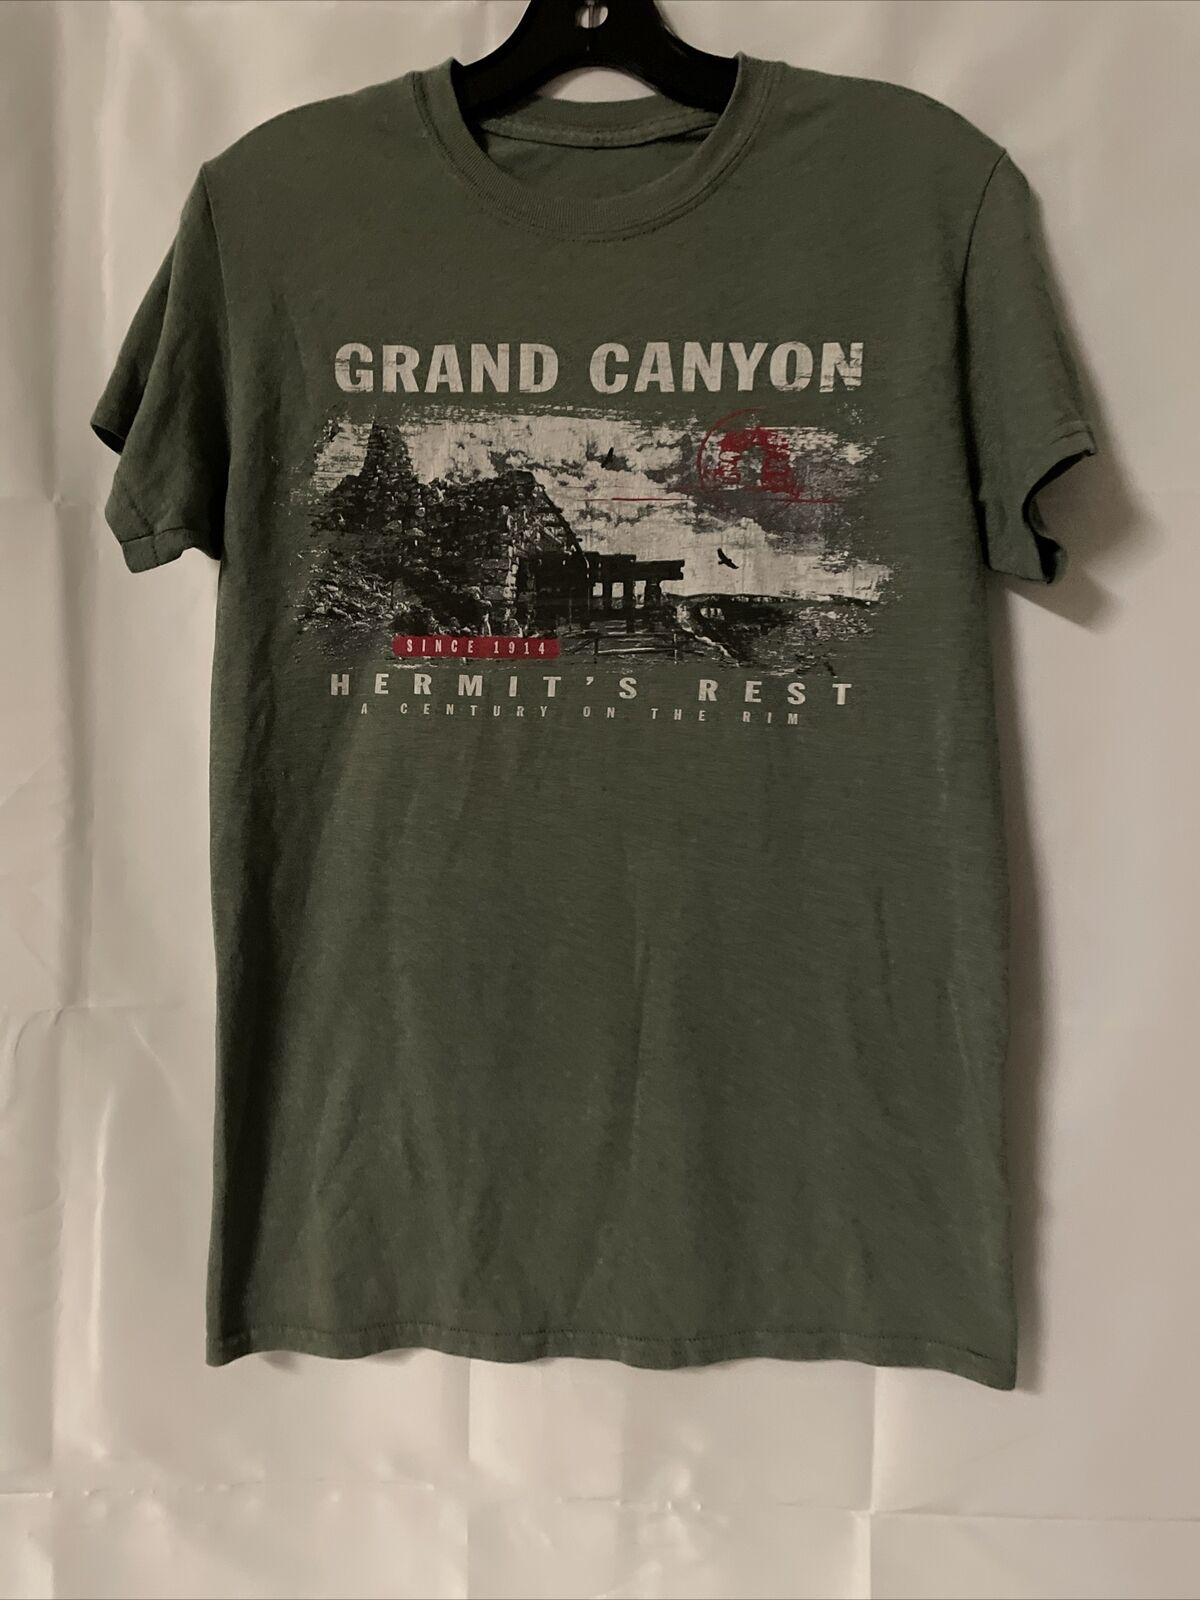 Grand Canyon Hermit's Rest T-Shirt Size Small